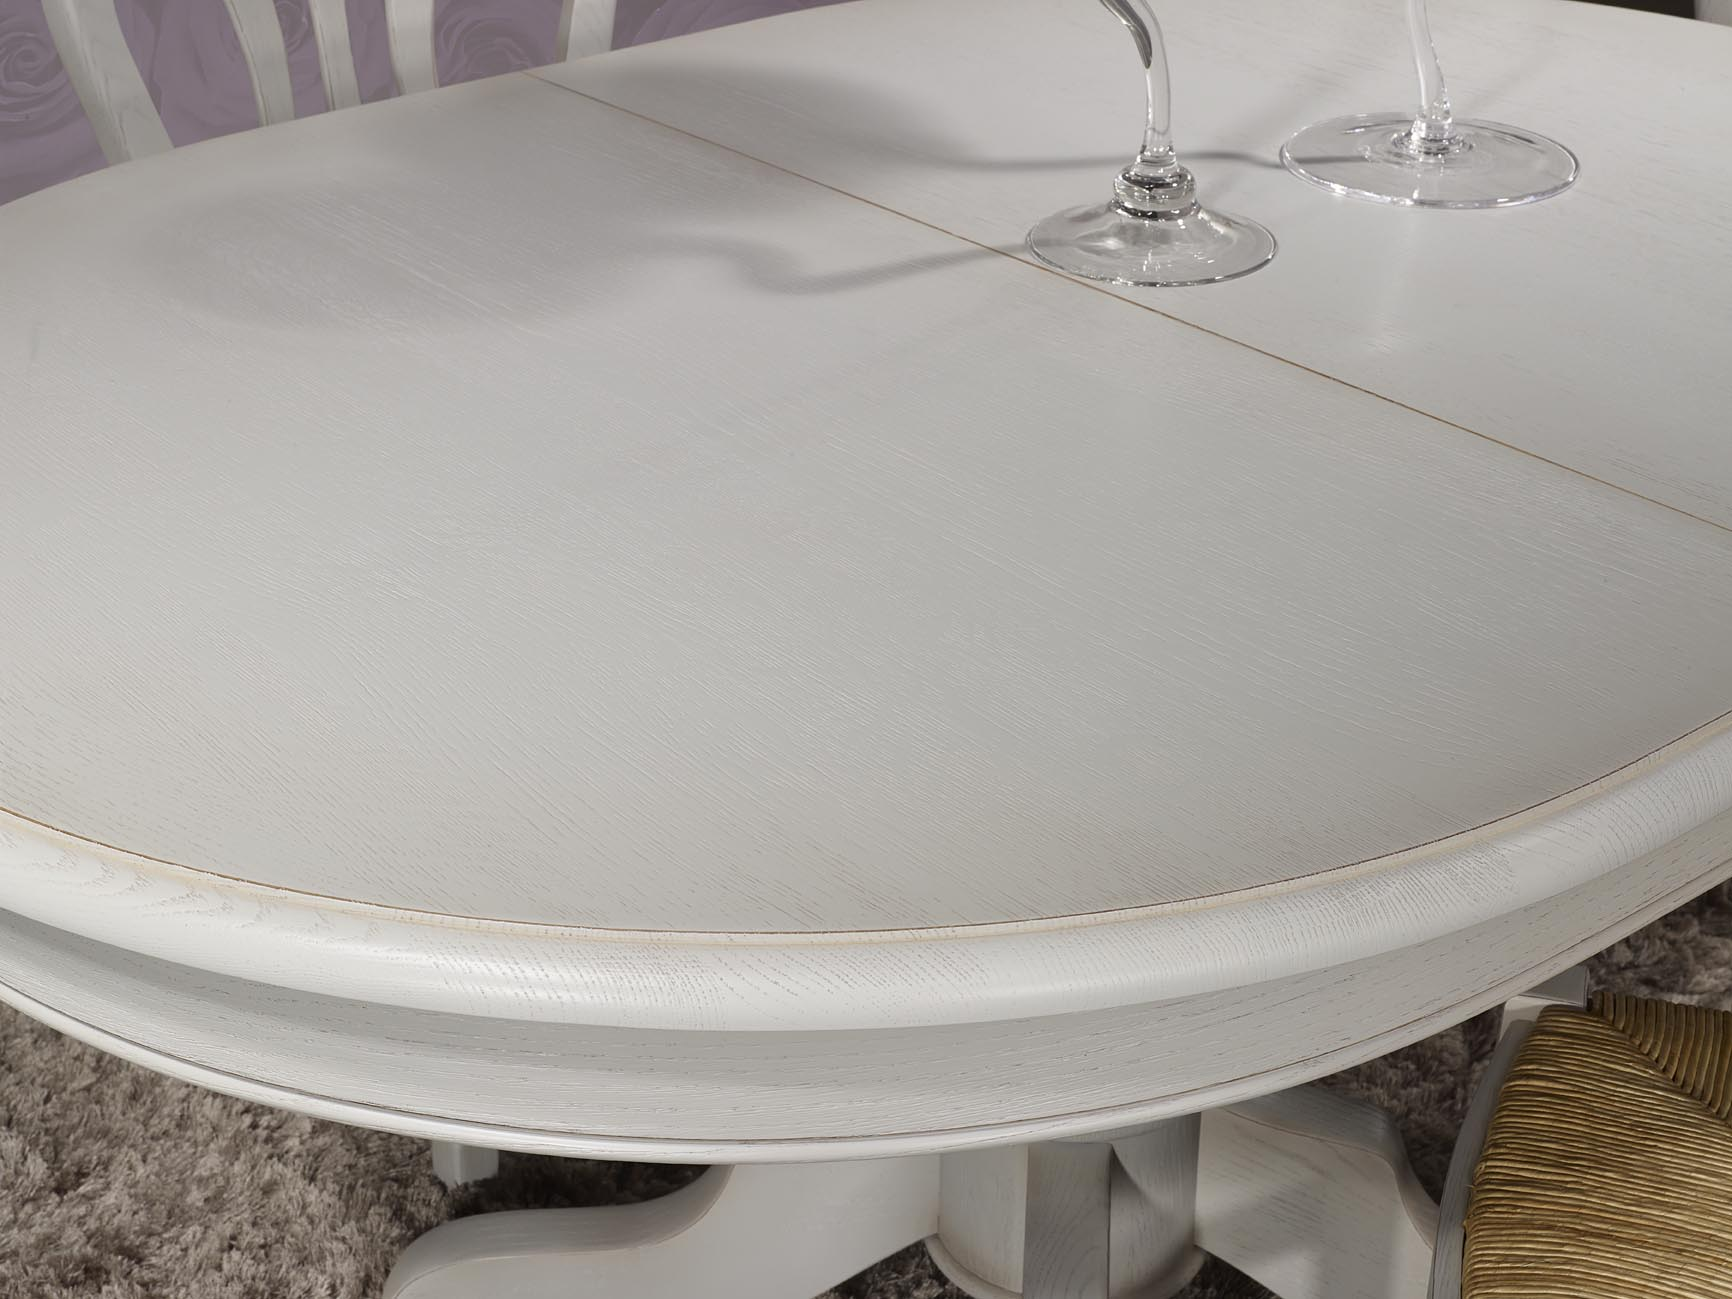 Table basse ovale pied central - Table ronde marbre pied central ...